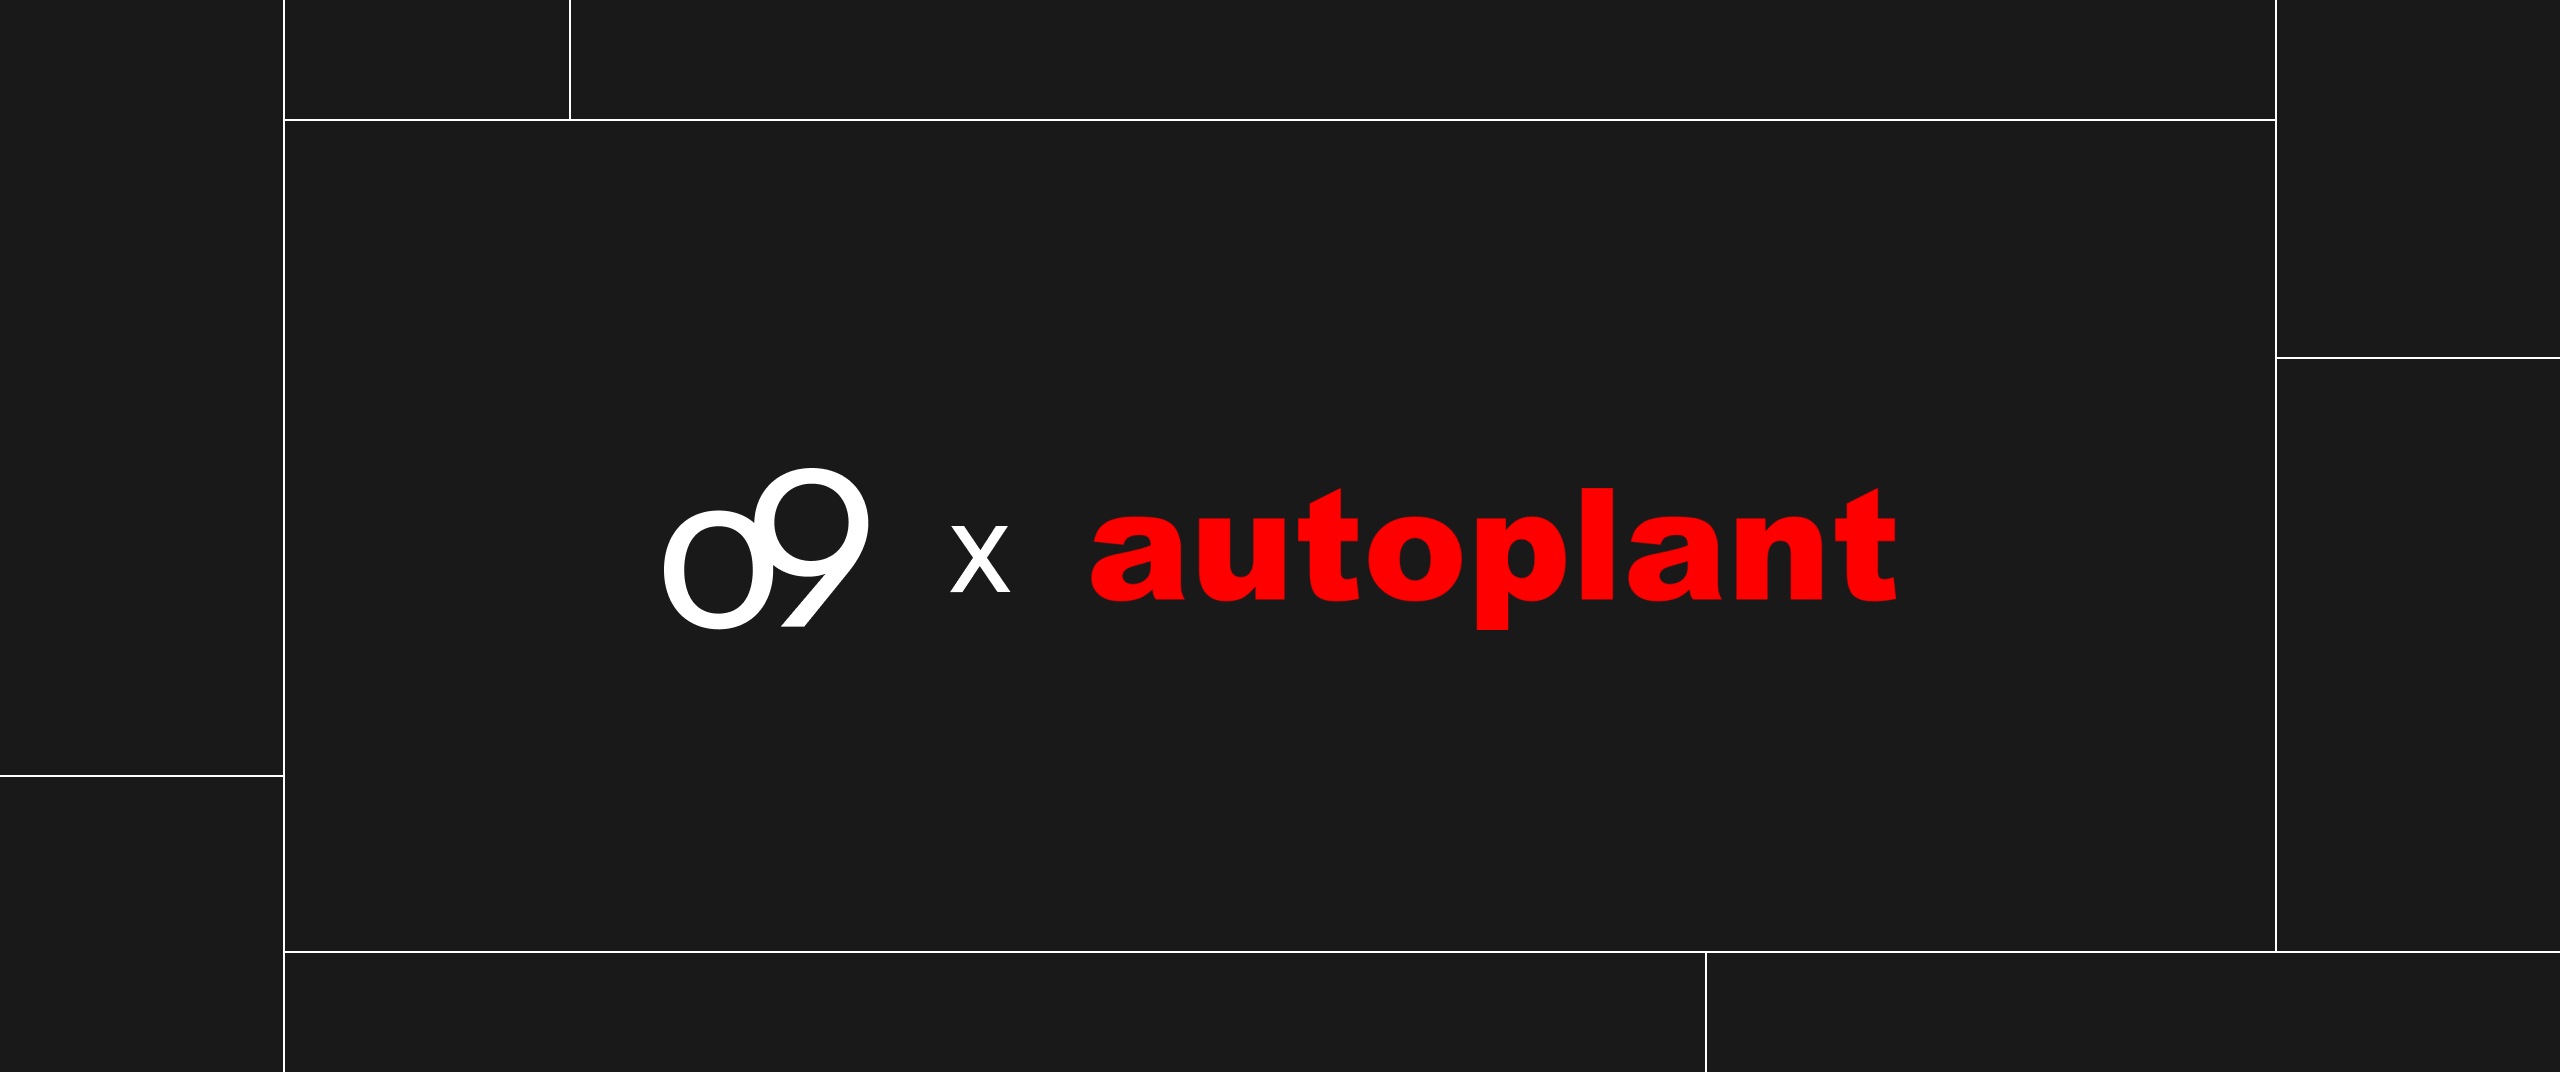 o9 Solutions and Autoplant join hands to co-create value and synergy for end-to-end supply chain solutions